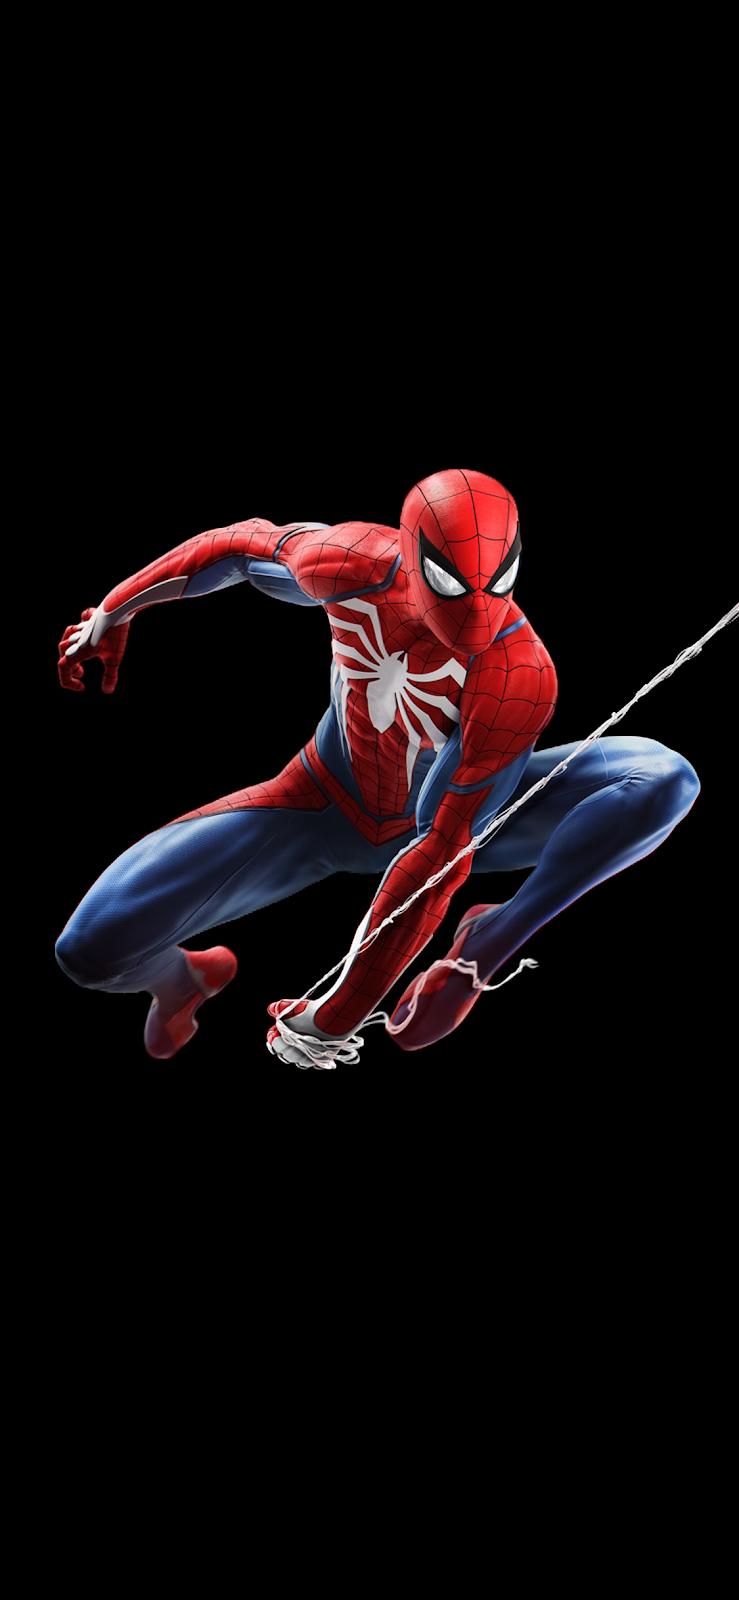 Spiderman iPhone X Wallpapers   Top Spiderman iPhone X 739x1600